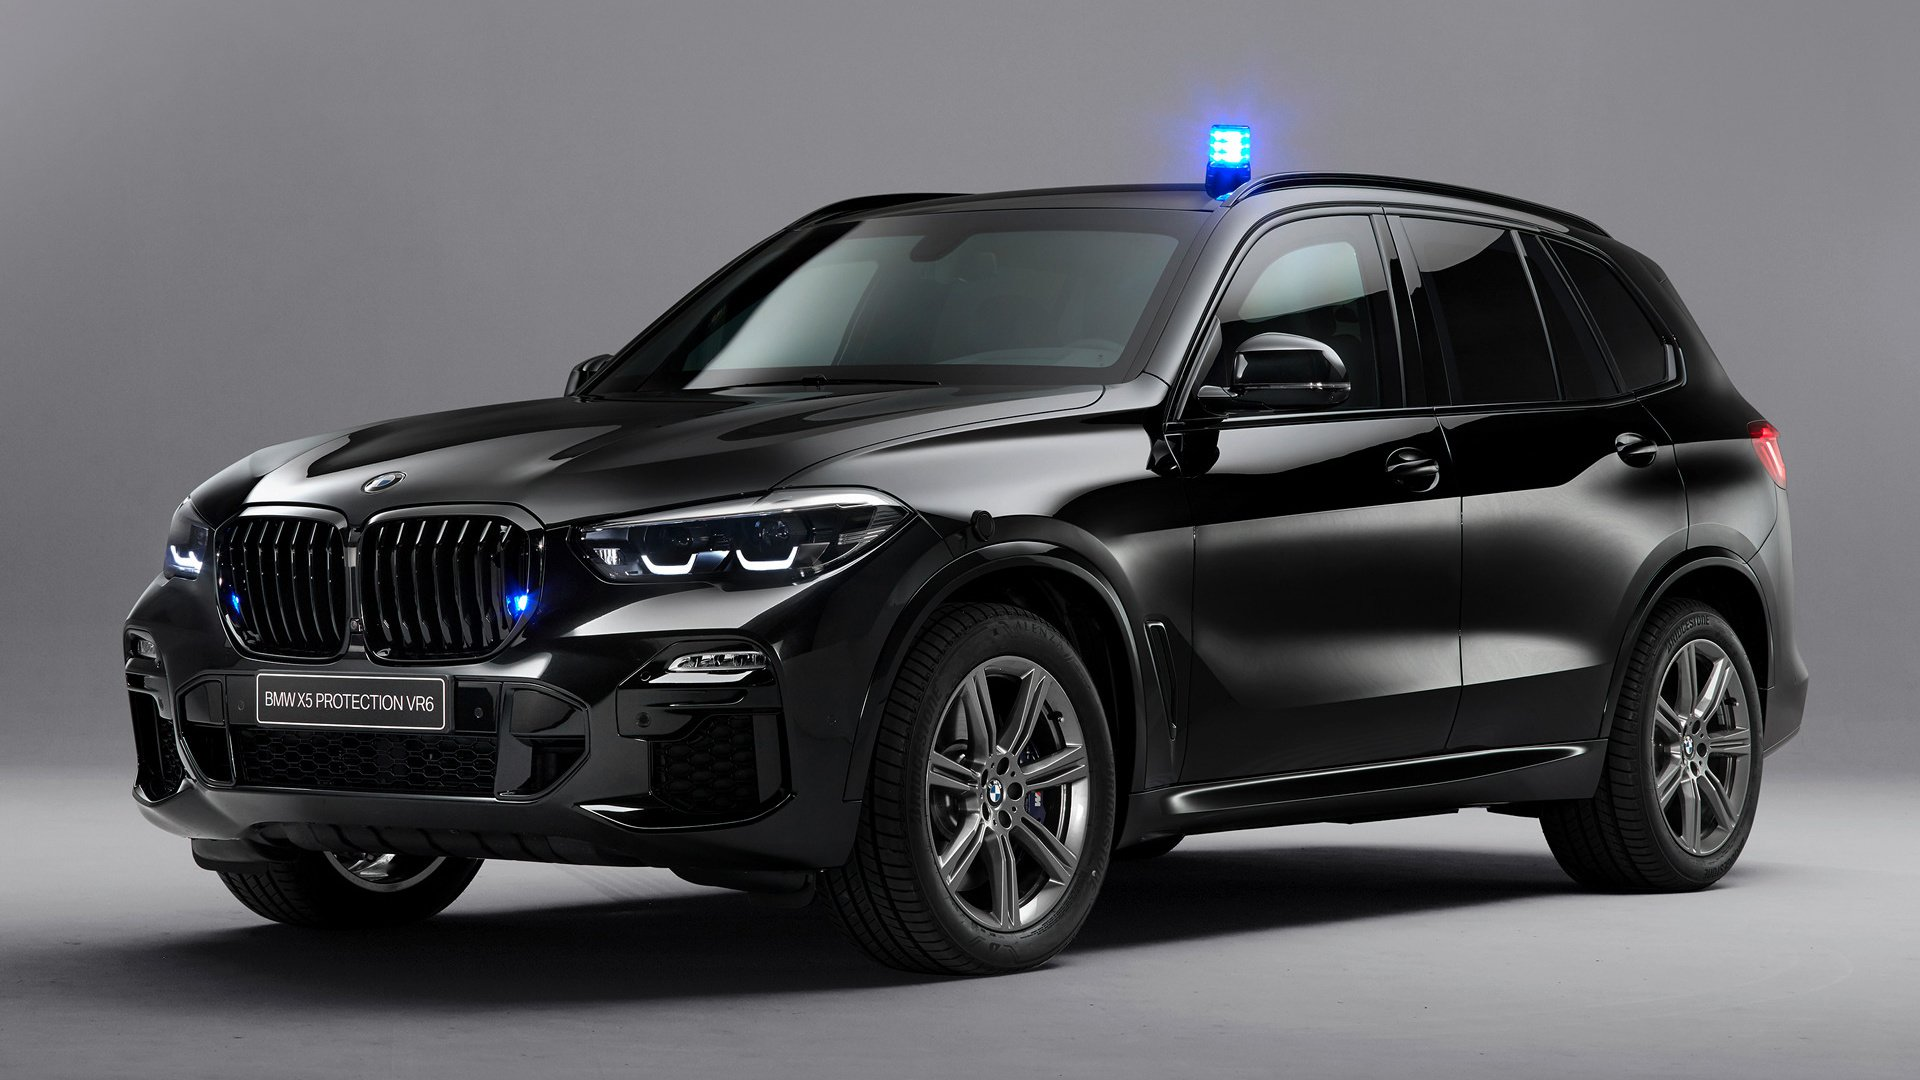 2019 BMW X5 Protection VR6 HD Wallpaper Background Image 1920x1080